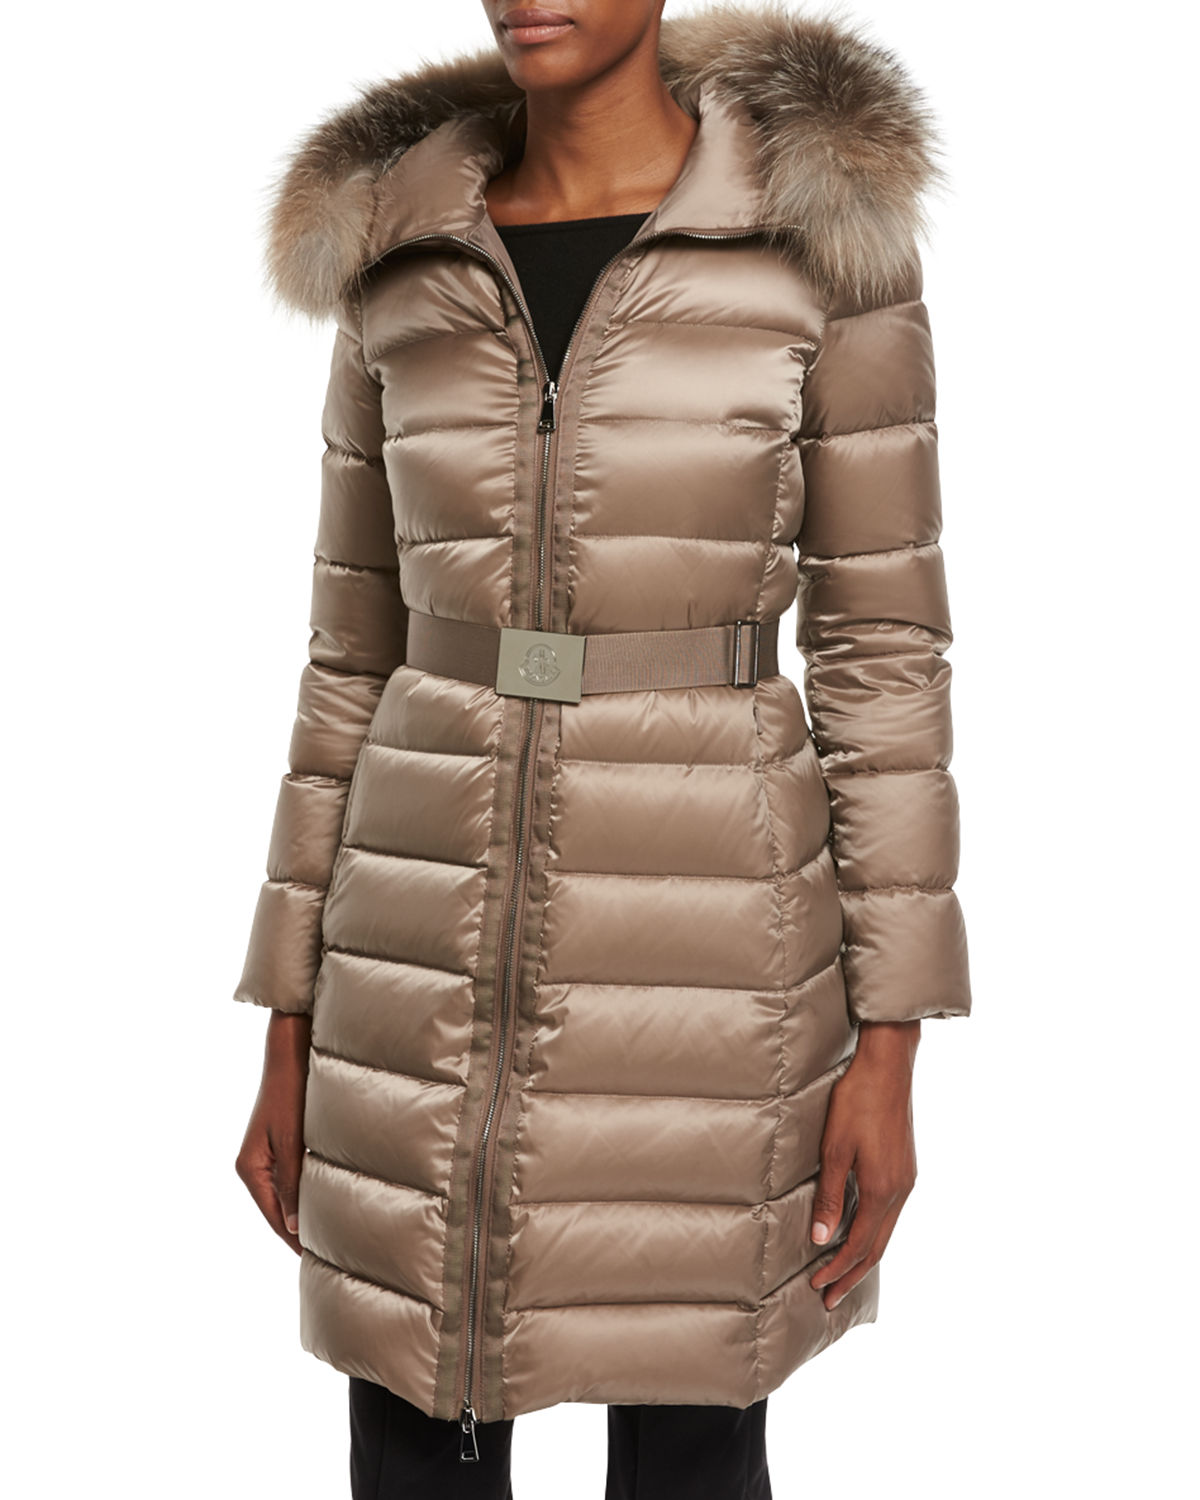 bca98e688 Tinuviel Shiny Quilted Puffer Coat w/Fur Hood